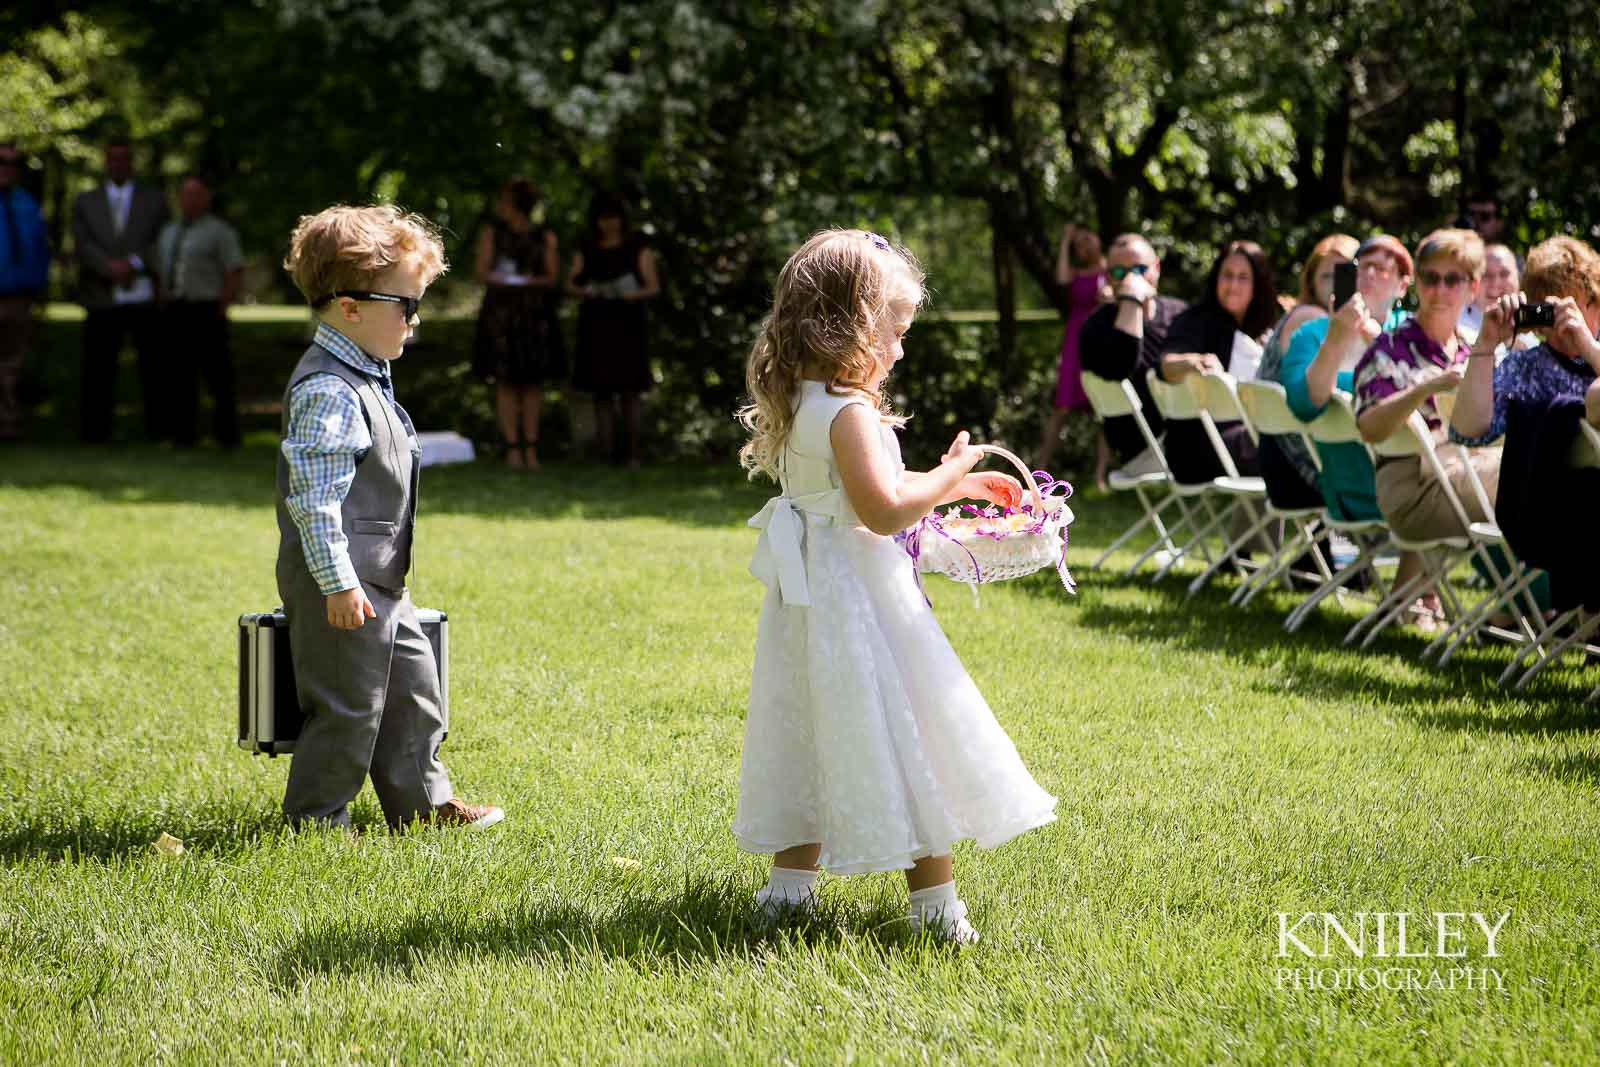 22-Plantation-Party-House-springtime-wedding-Rochester-NY-Kniley-Photography.jpg